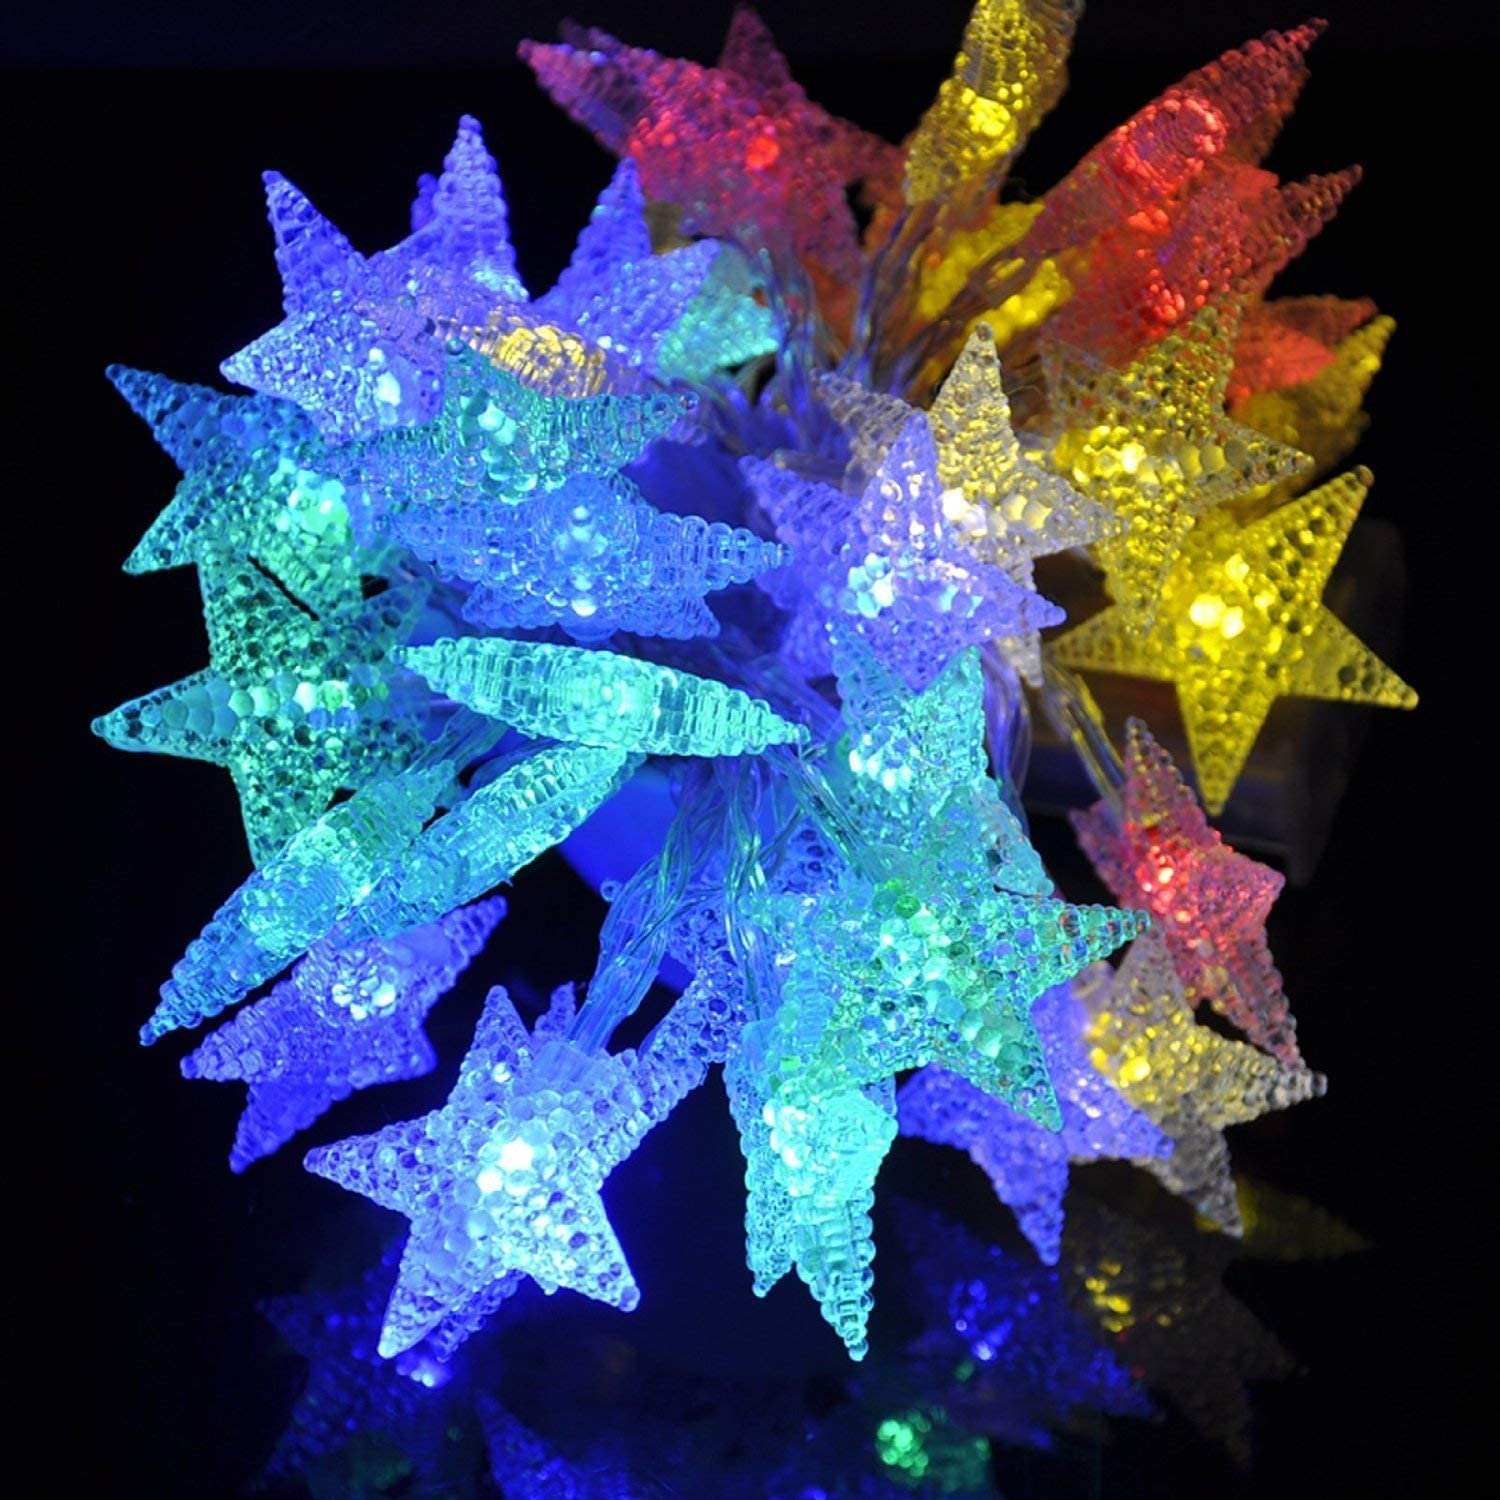 echosari 4M 40 LED Battery Powered Fairy String Light,Five-Pointed Star String Lights for Chrismas, Party, Wedding, New Year, Garden Décor (Multi-Color)